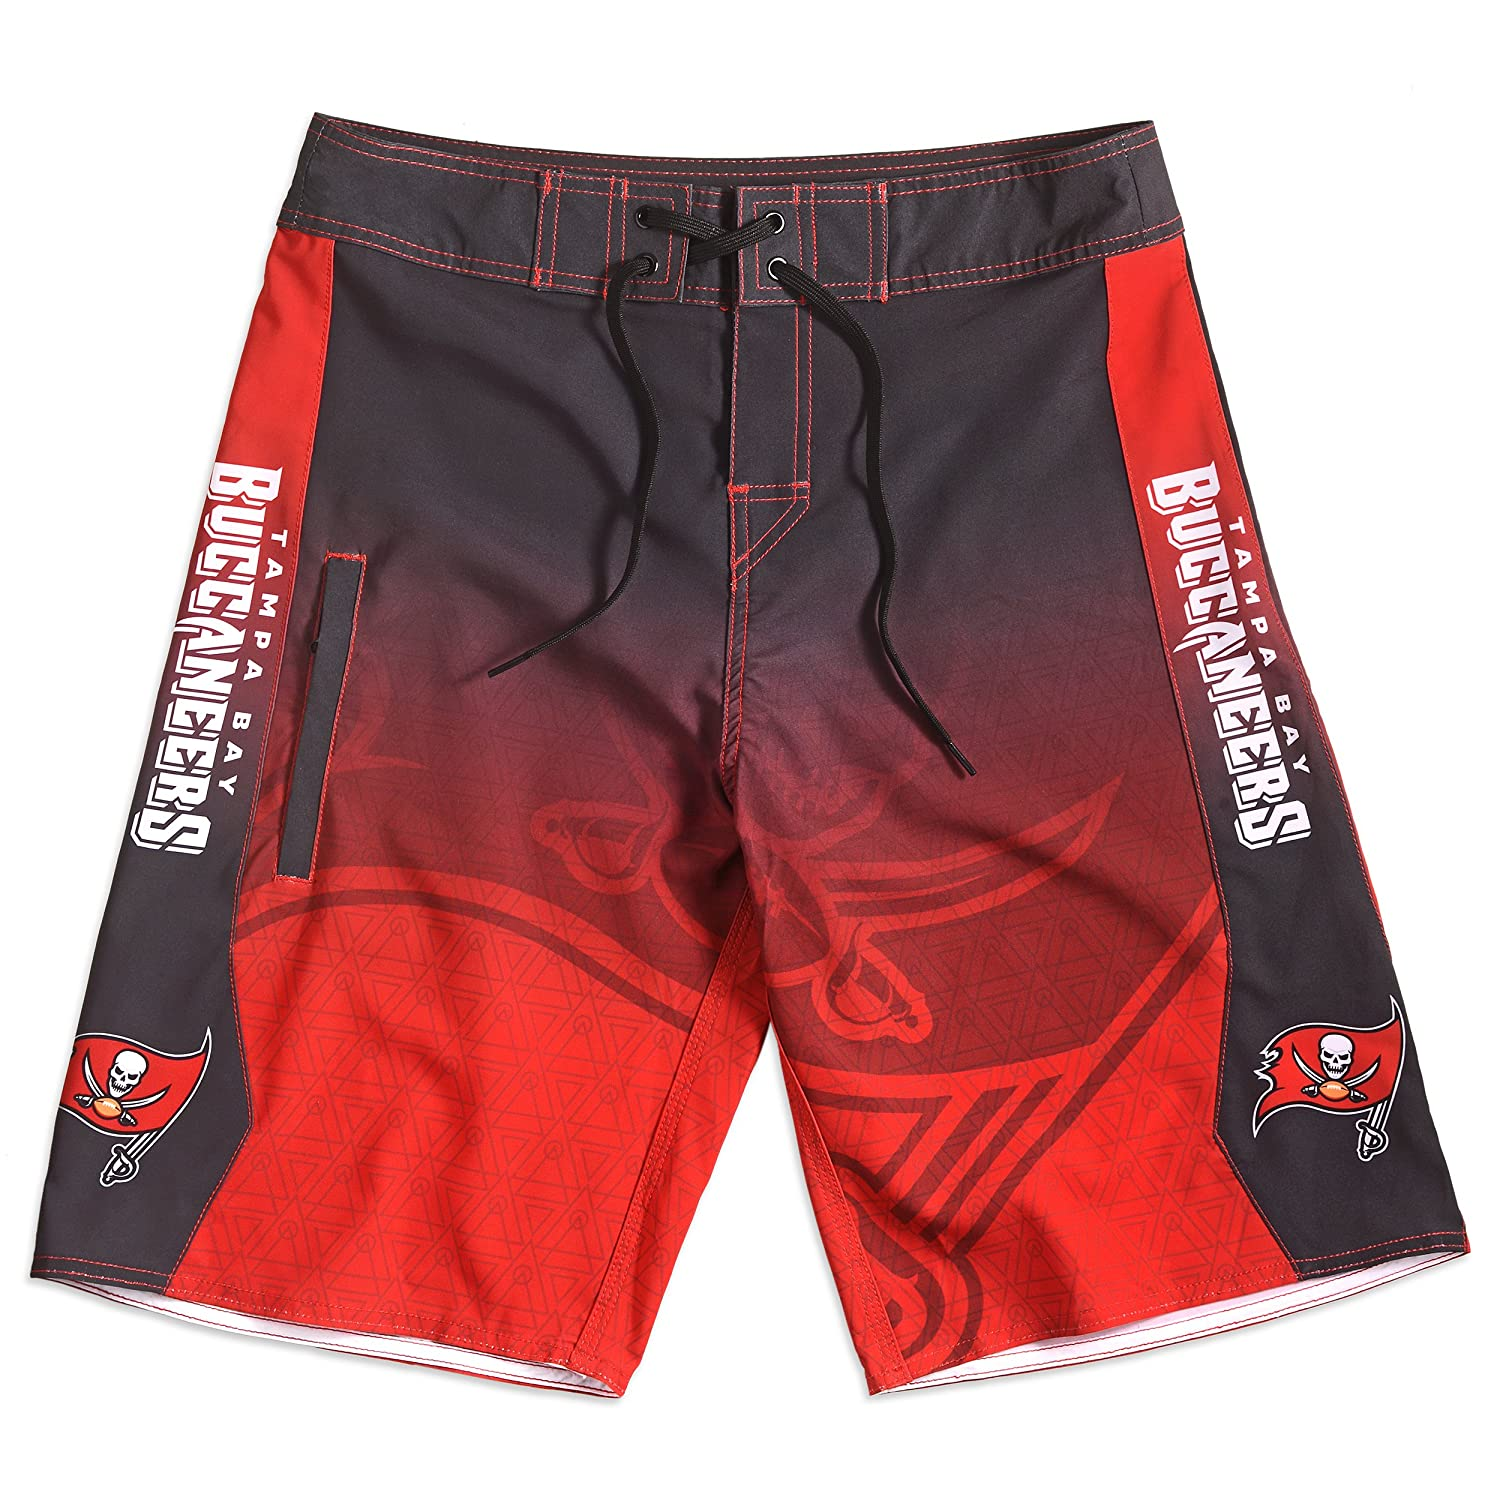 Tampa Bay Buccaneers Gradient Board Short Double Extra Large 40